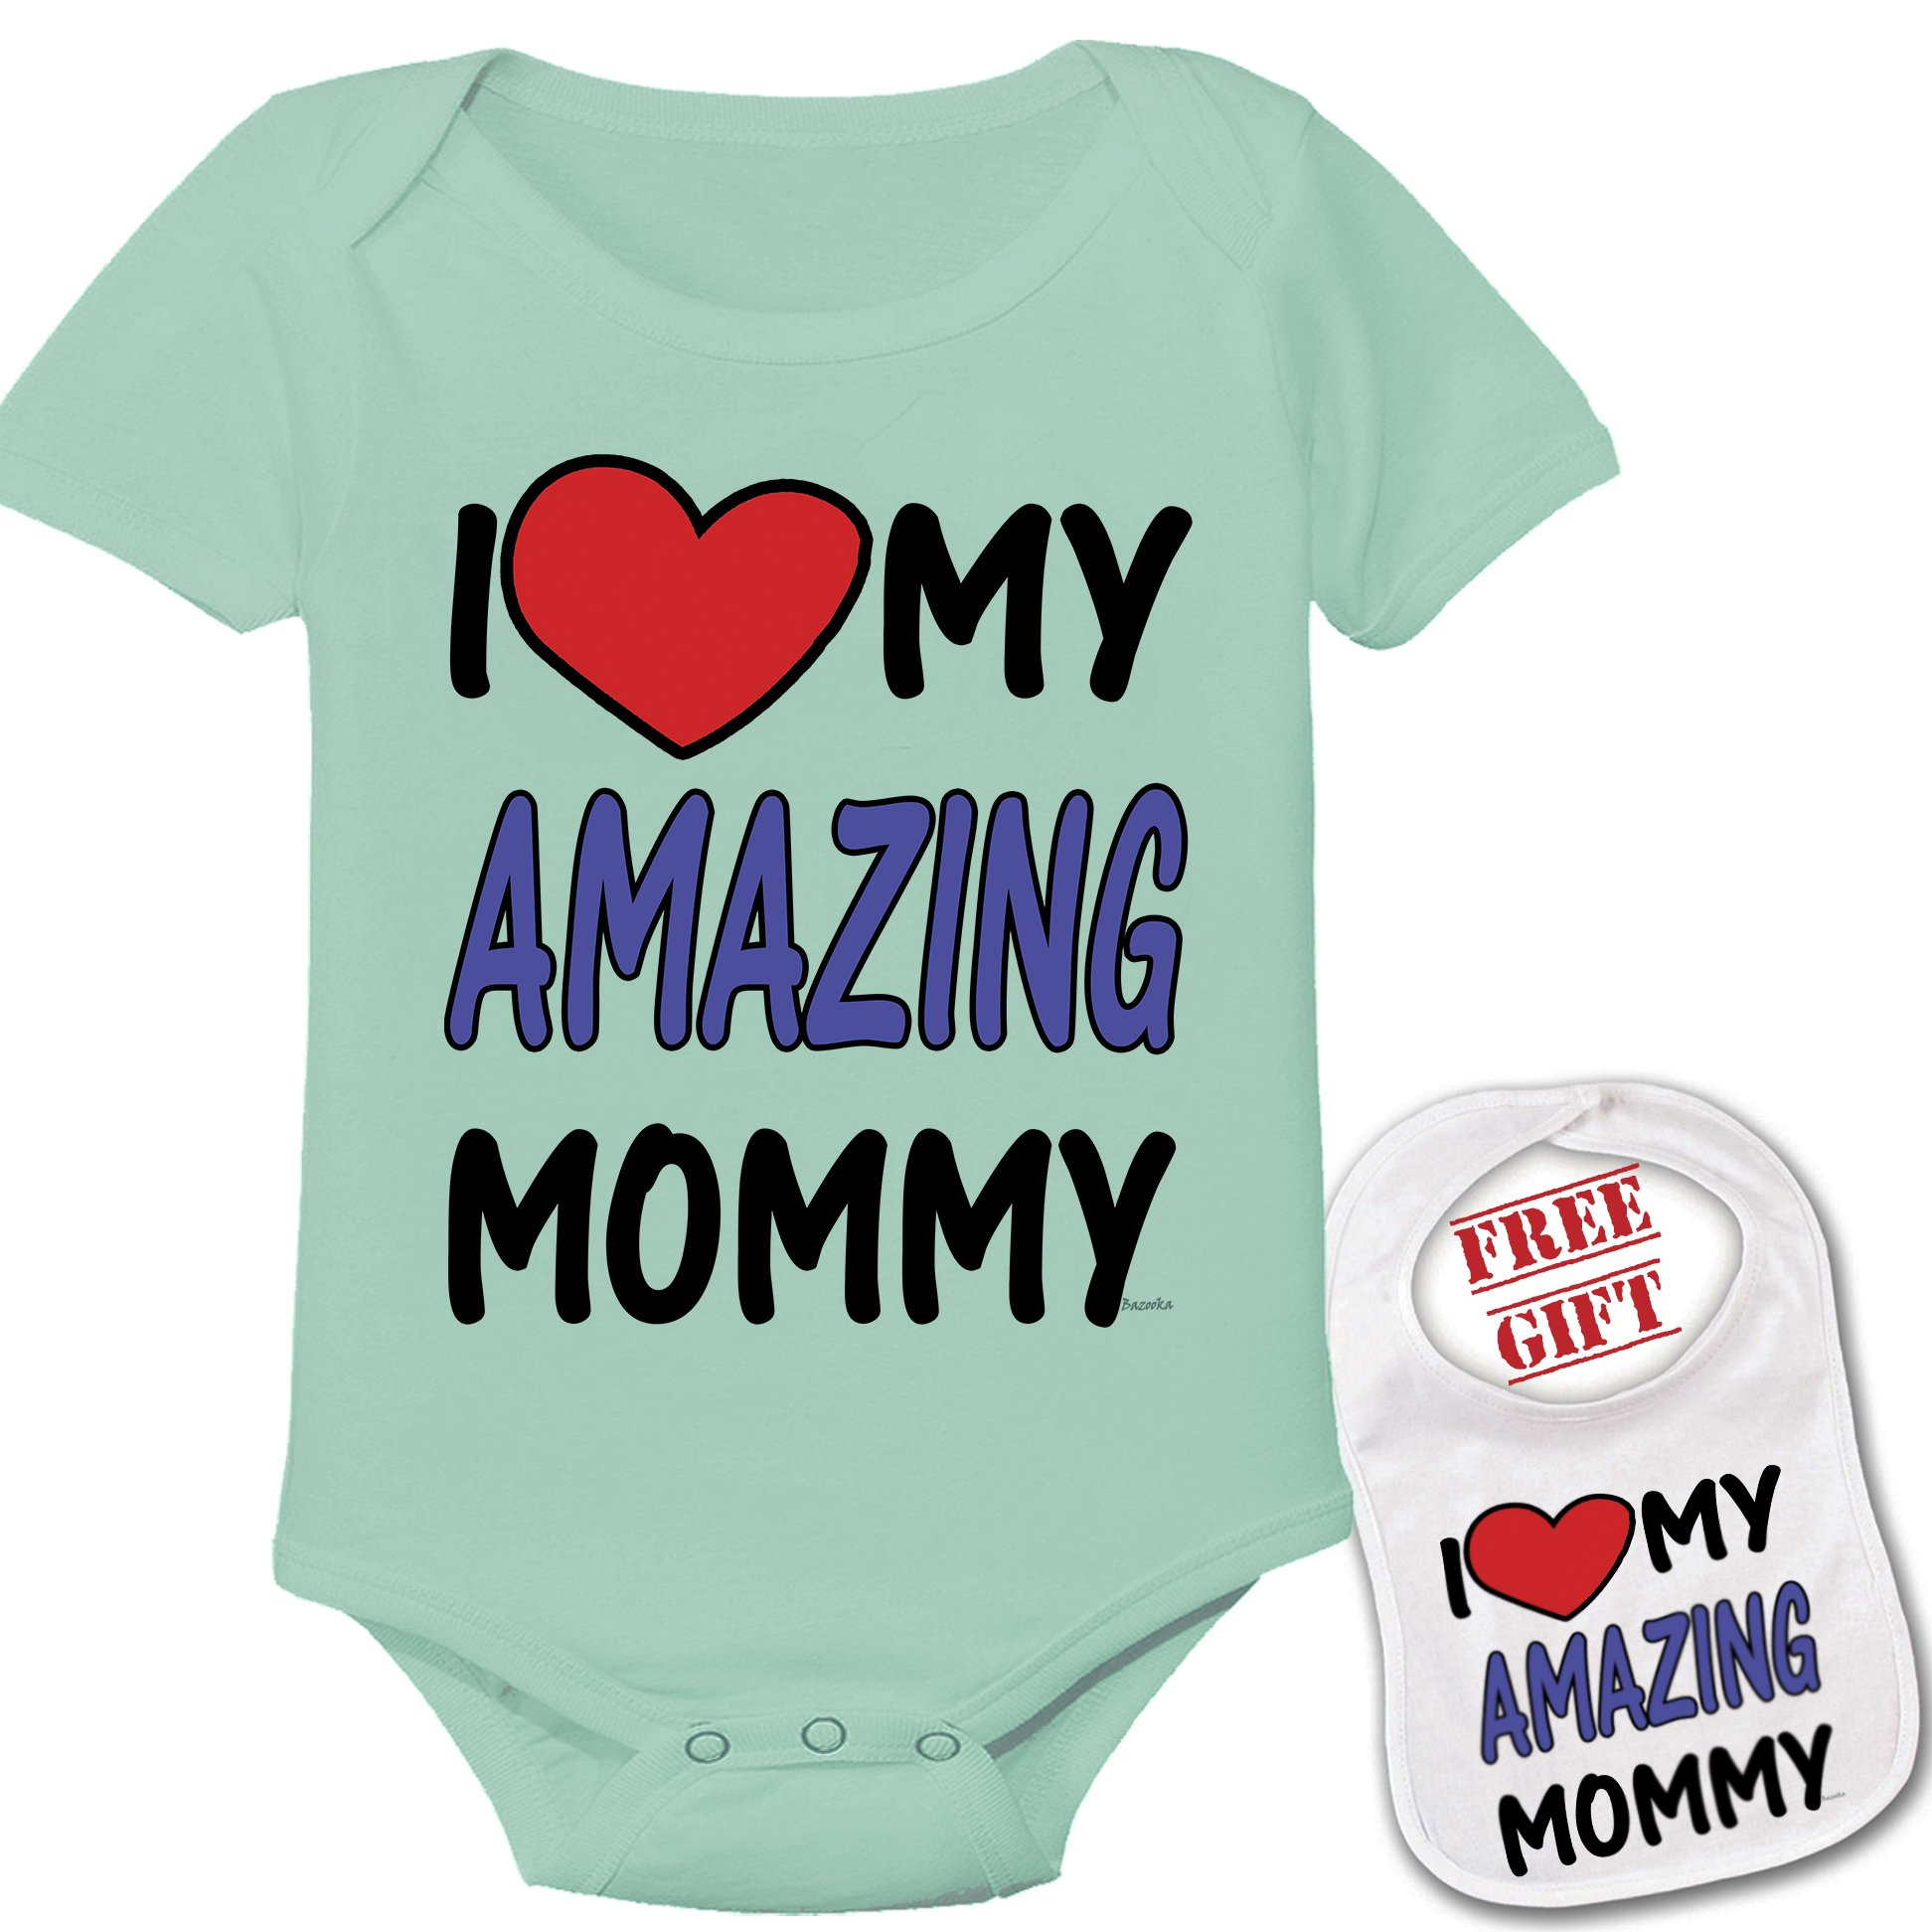 '' I love my amazing mommy ''Cute Custom boutique Baby bodysuit onesie & matching bib